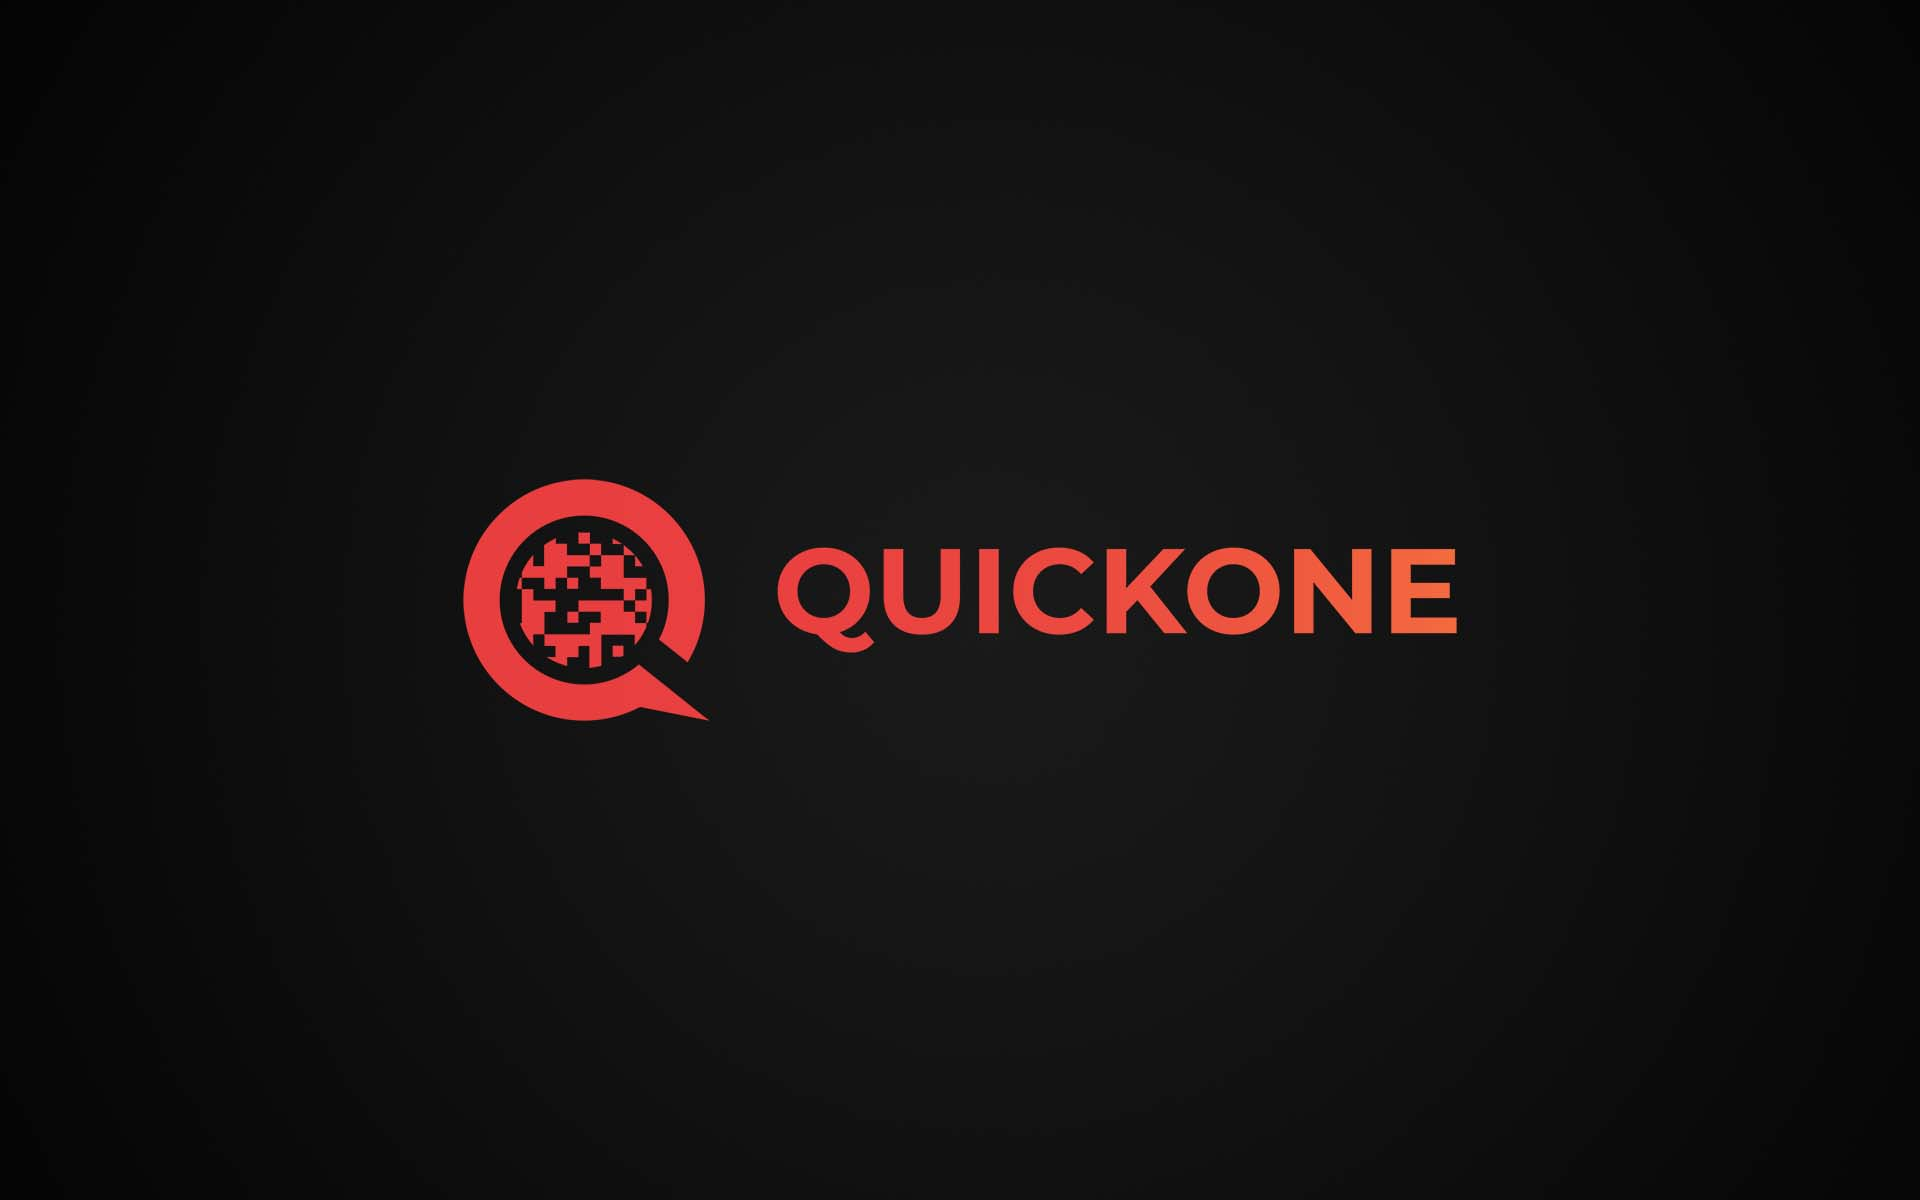 Quick One Launches ICO Based on Newly Developed QR Code Technology That May Become the Future of Ultra Secure Information Sharing, Identification & Easy Online Payments